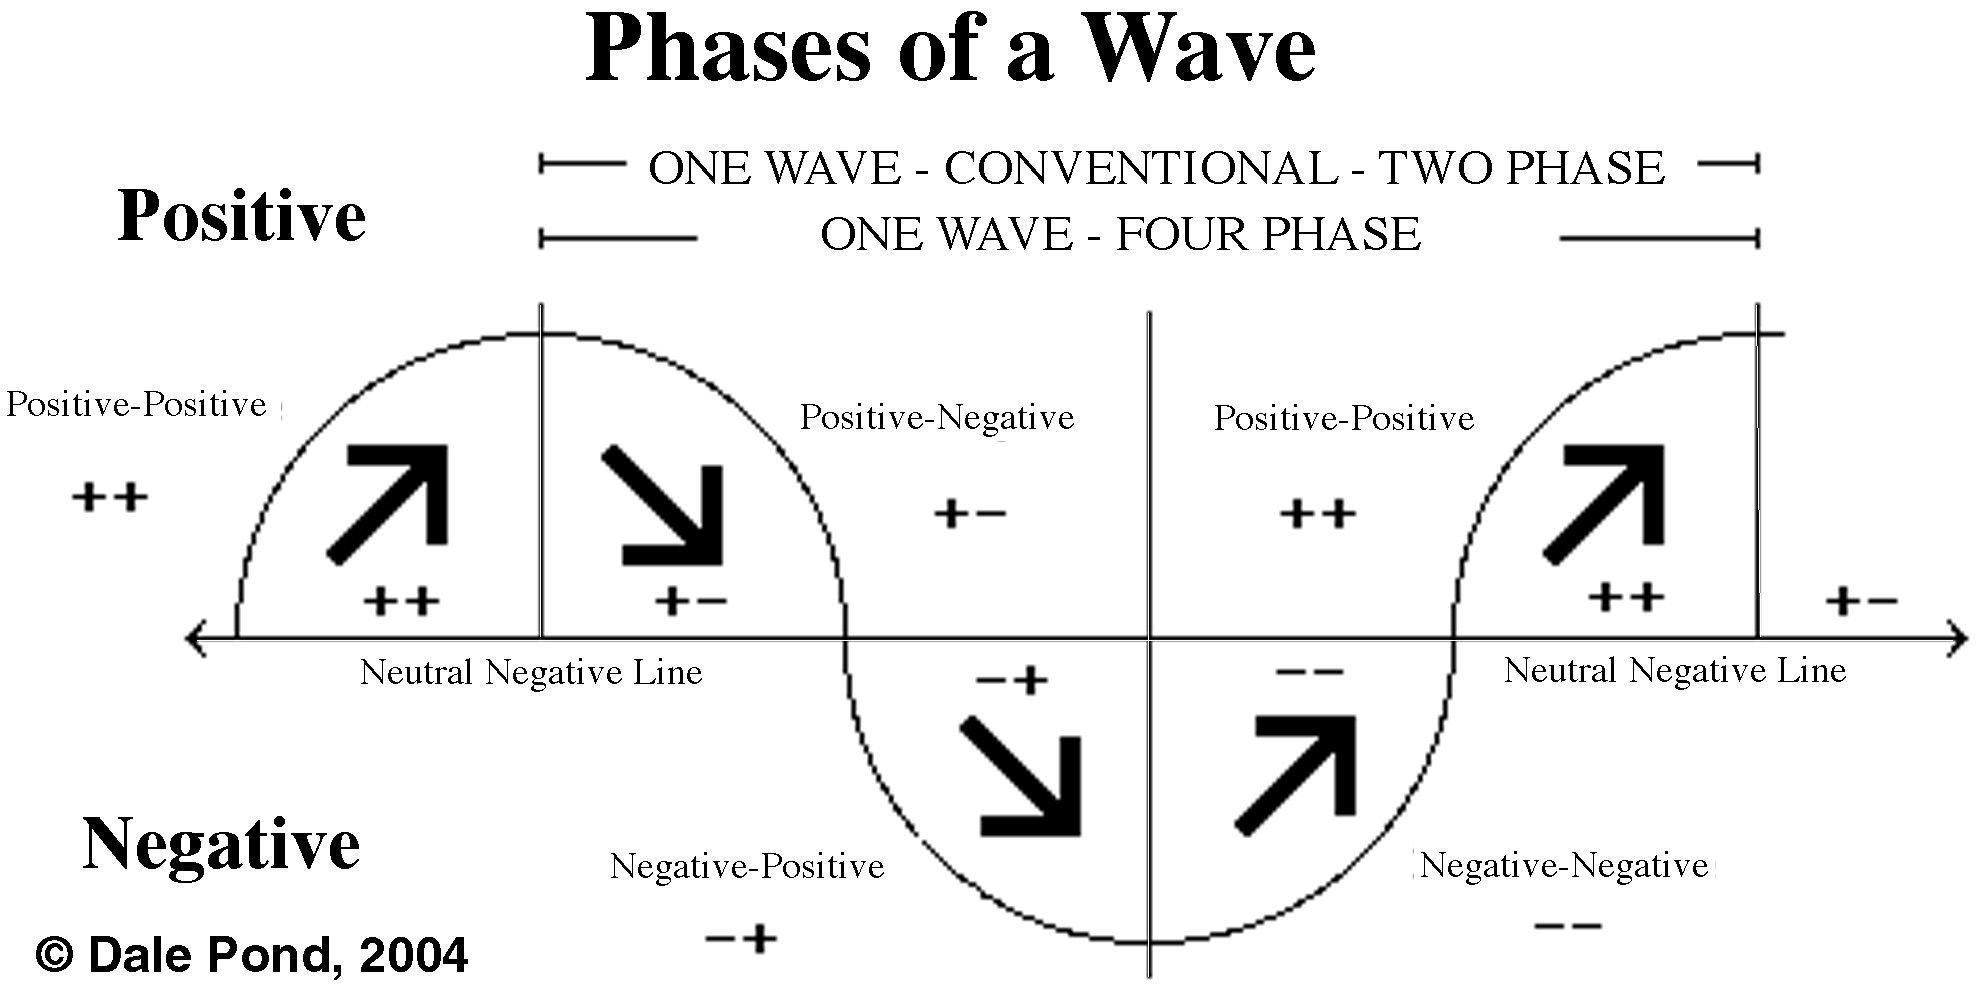 Four Phases of a Wave